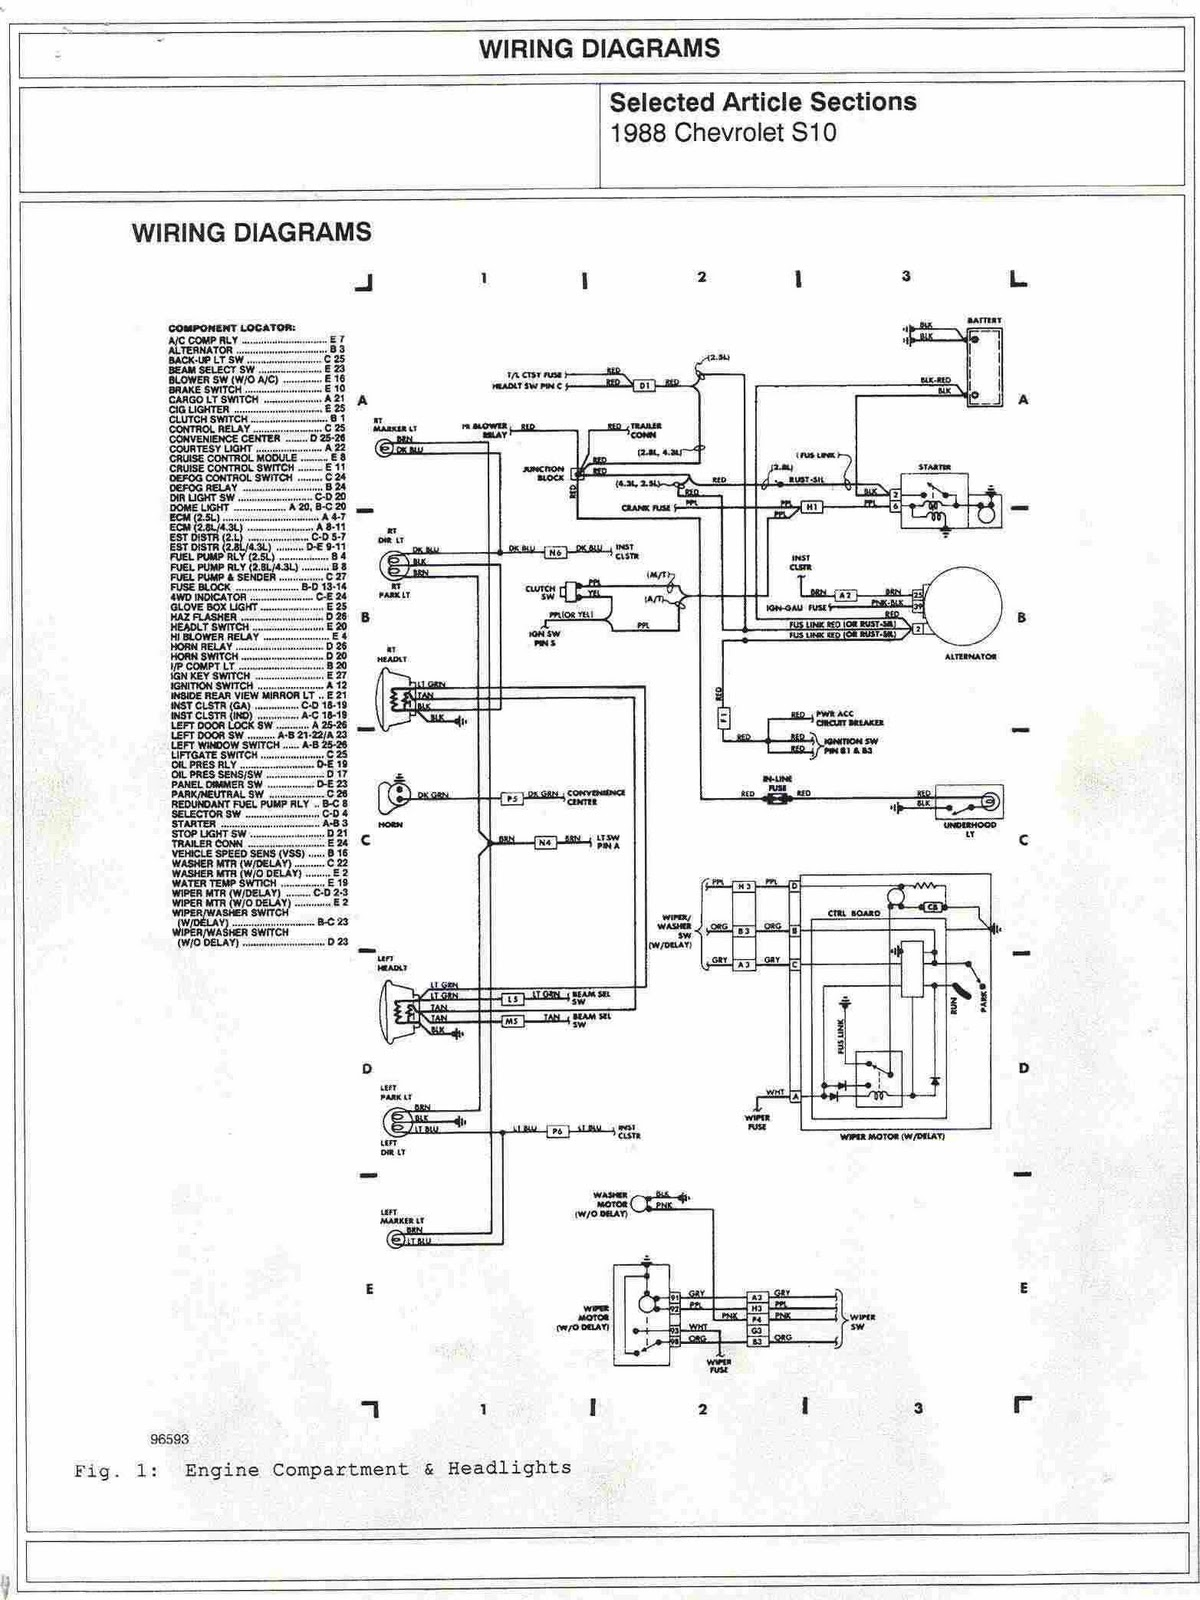 1988+Chevrolet+S10+Engine+Compartment+and+Headlights+Wiring+Diagrams 95 s10 wiring diagram 95 tahoe wiring diagram \u2022 wiring diagrams  at soozxer.org